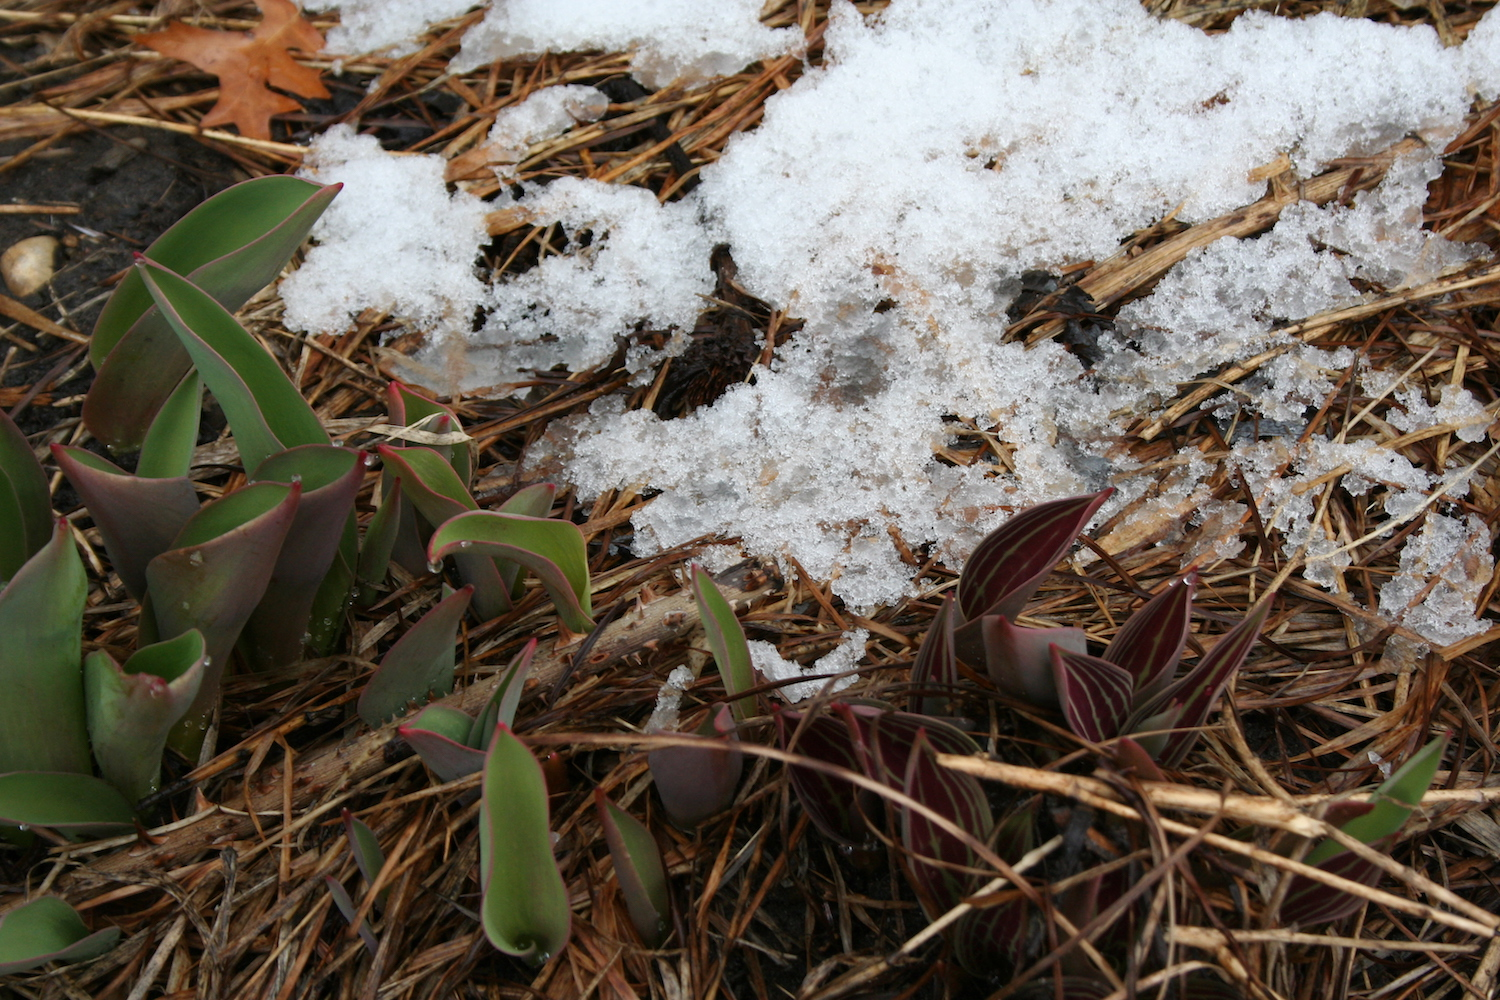 squill emerging in snow